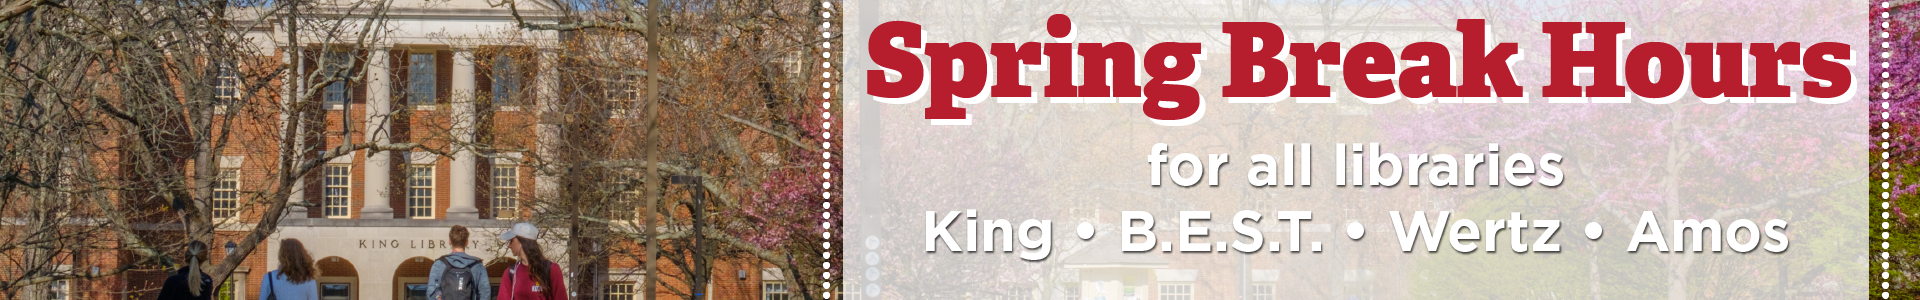 Spring Break Hours for All Libraries News